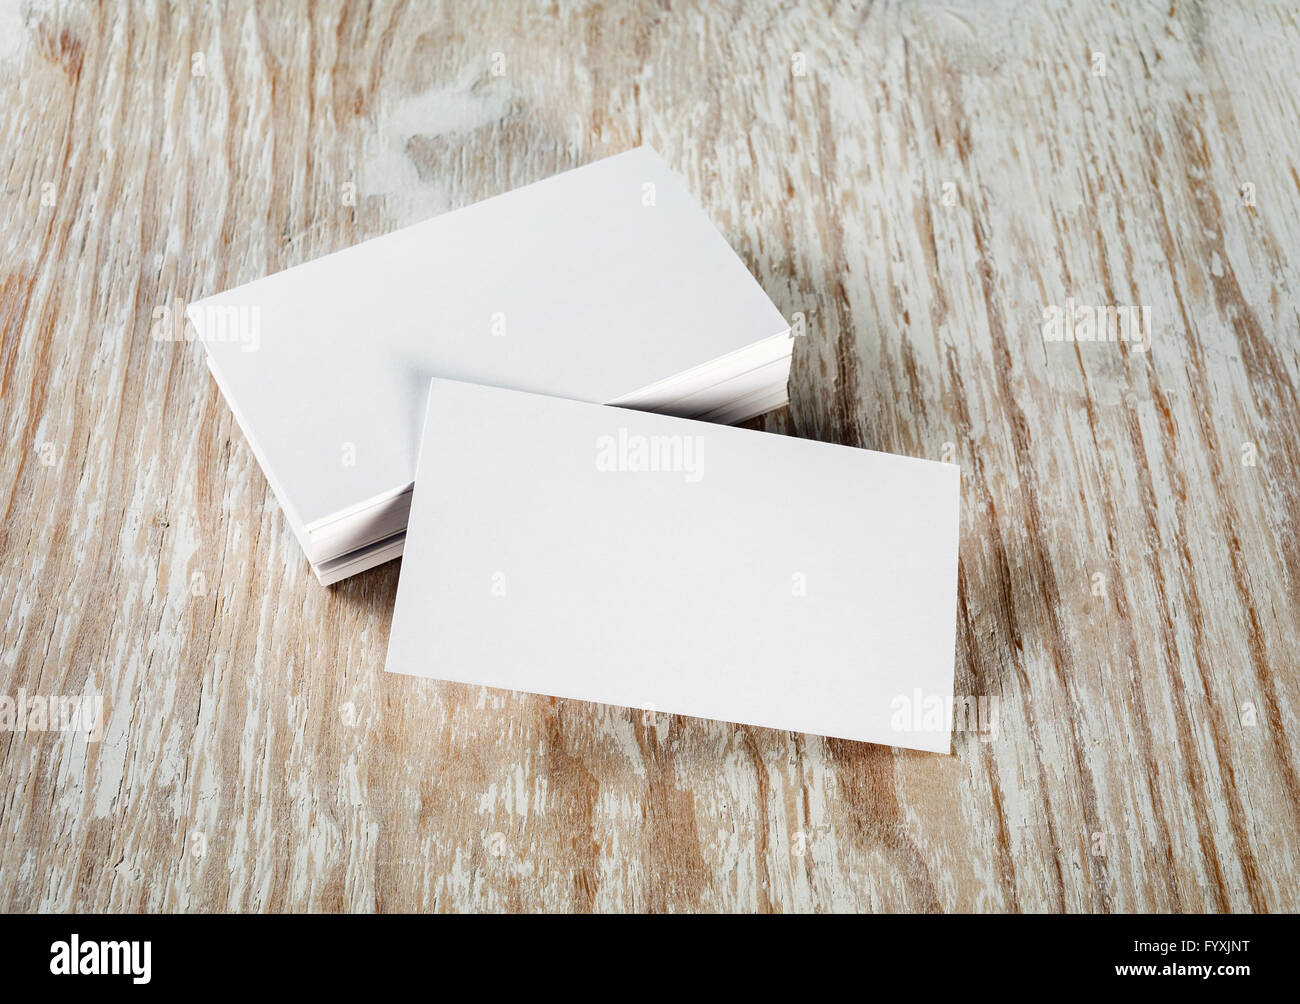 Business card blank mockup stock photos business card blank mockup blank business cards stock image reheart Image collections